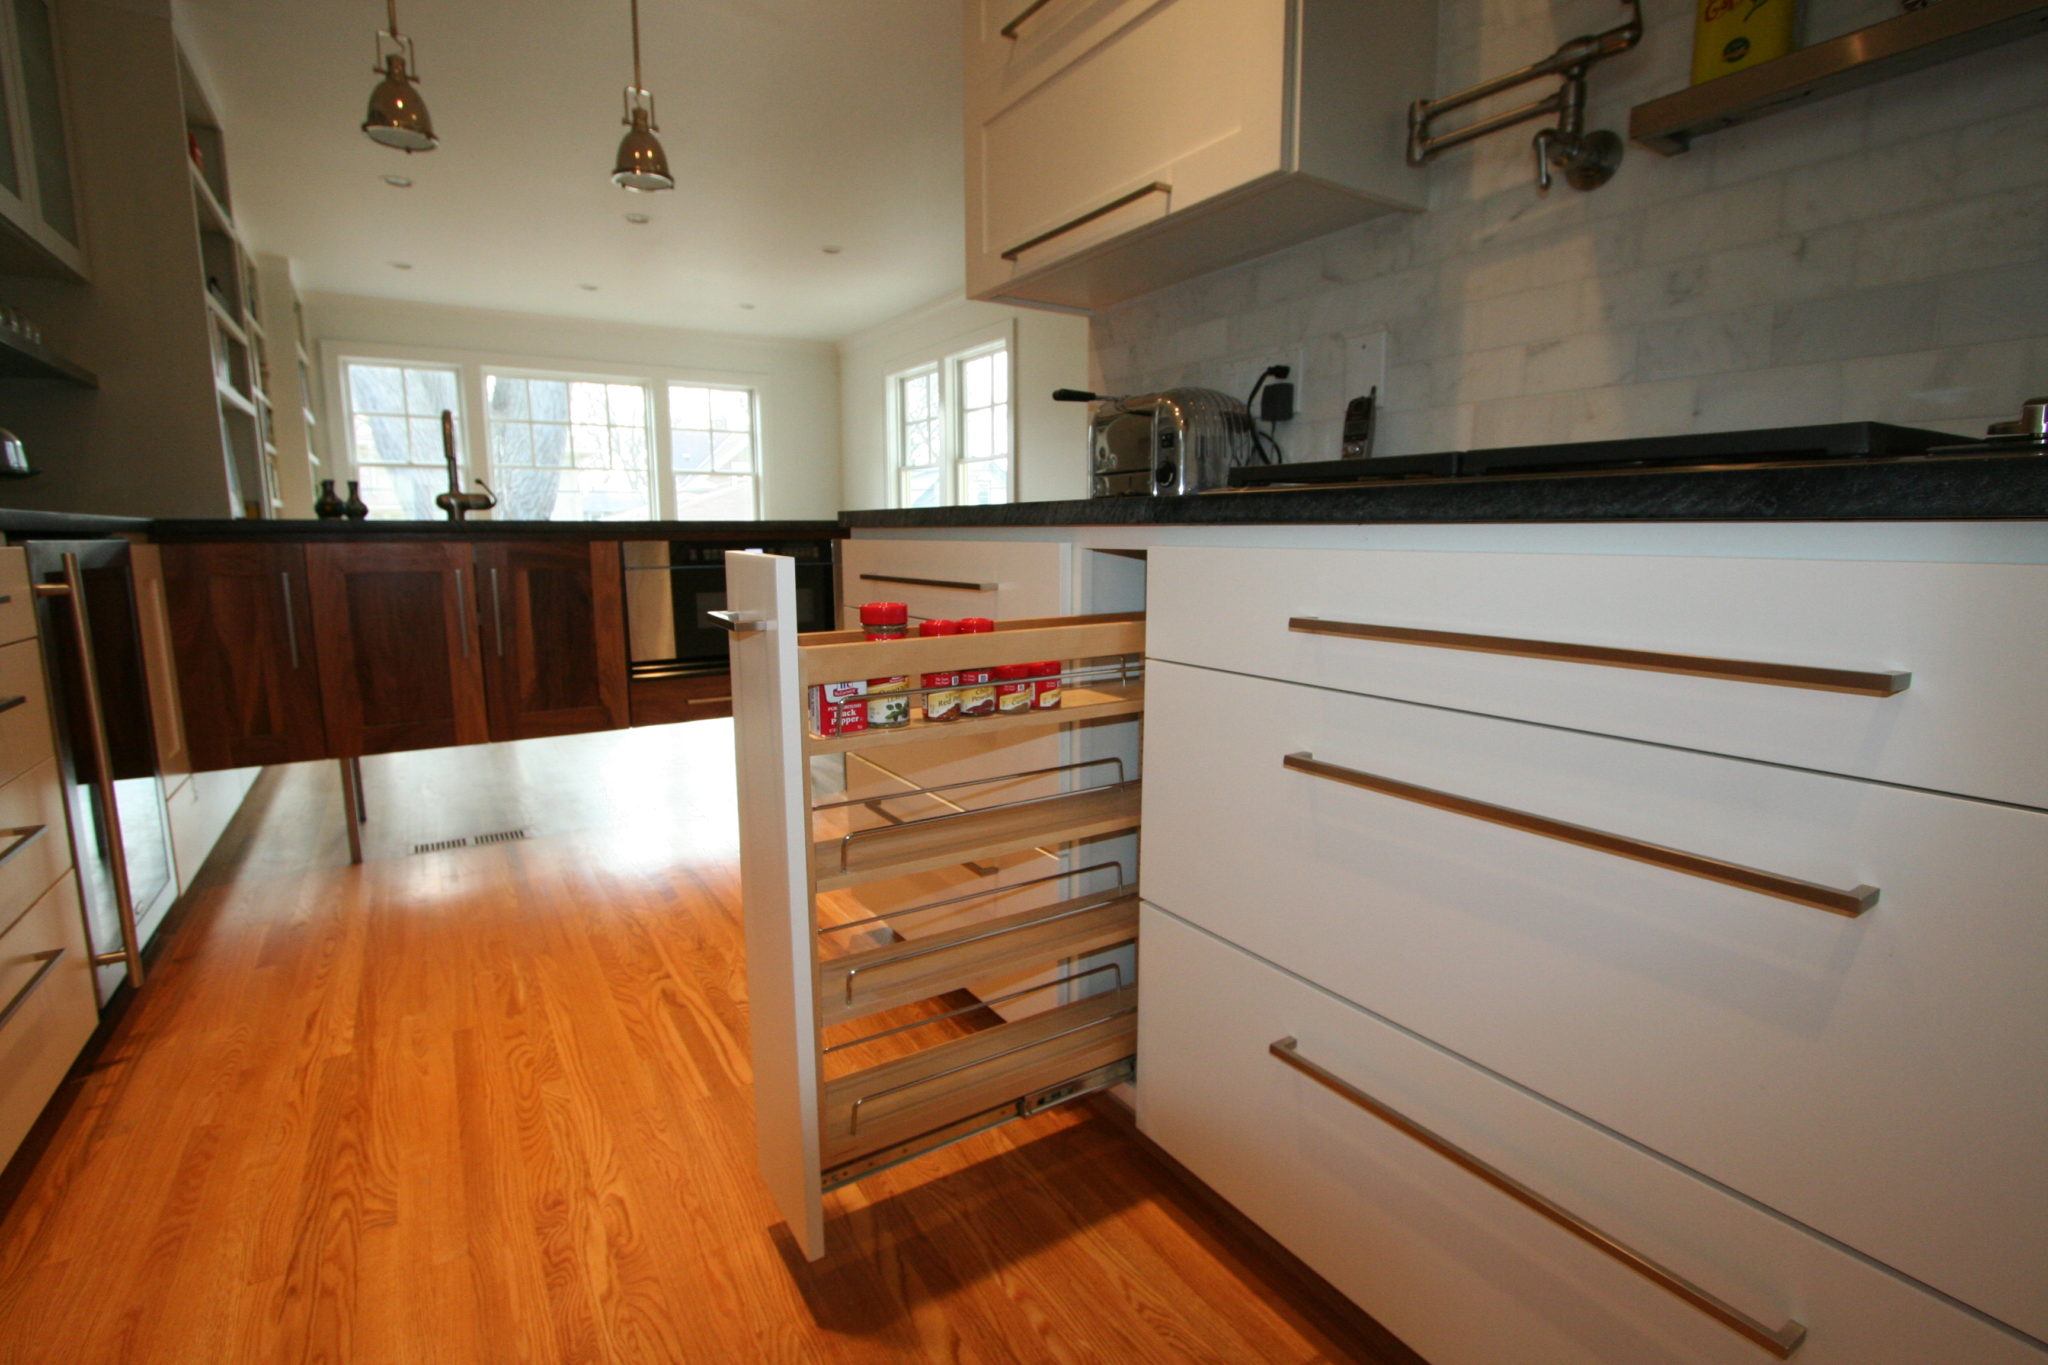 custom roll out shelves maximize your existing space